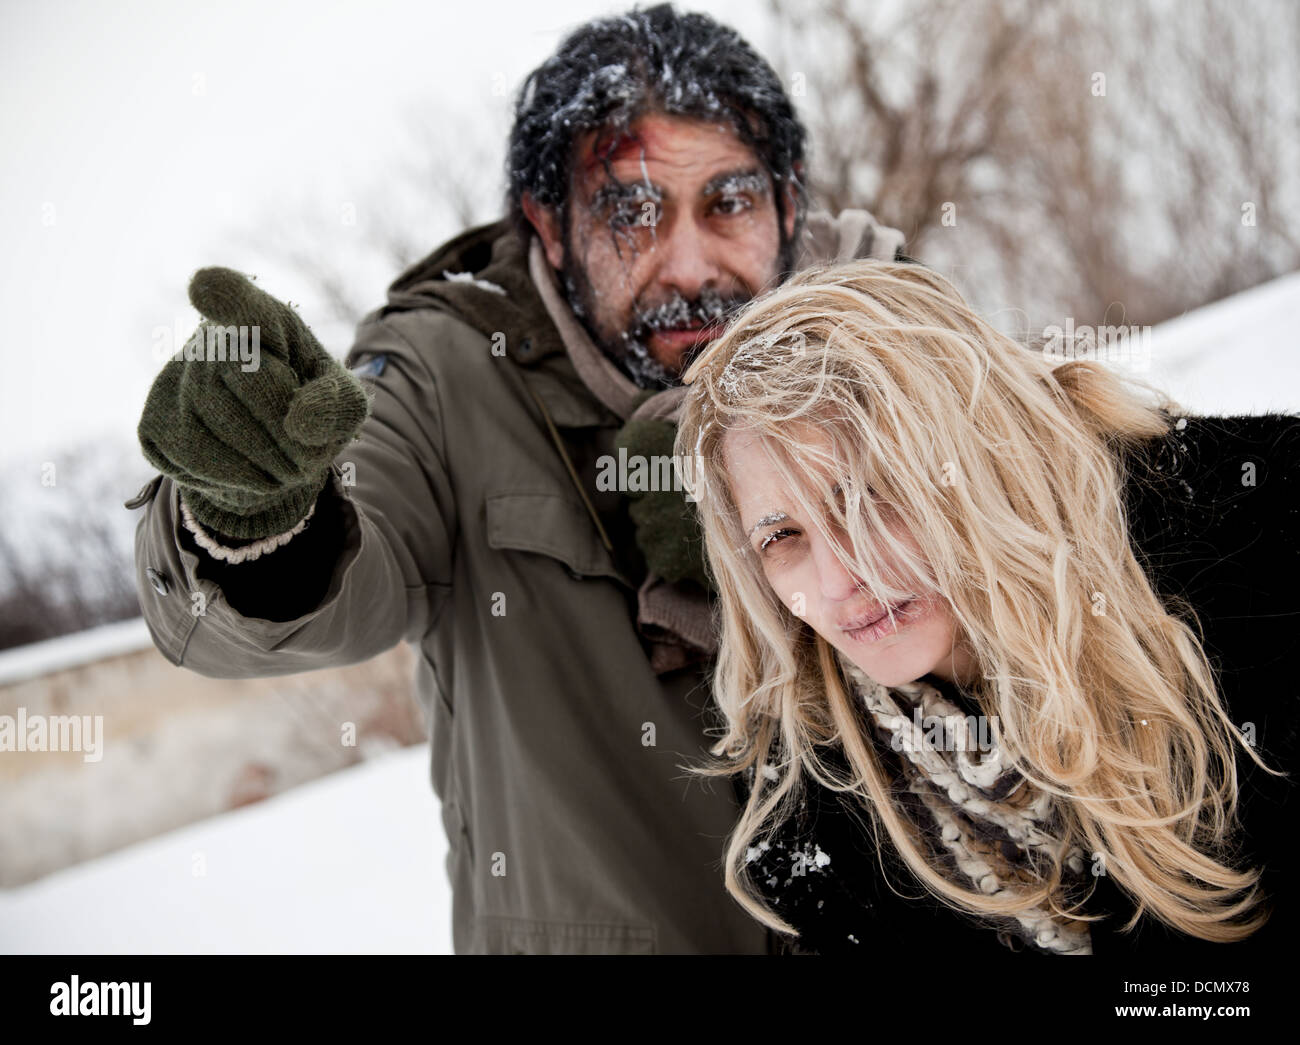 frozen lost couple winter struggle - Stock Image